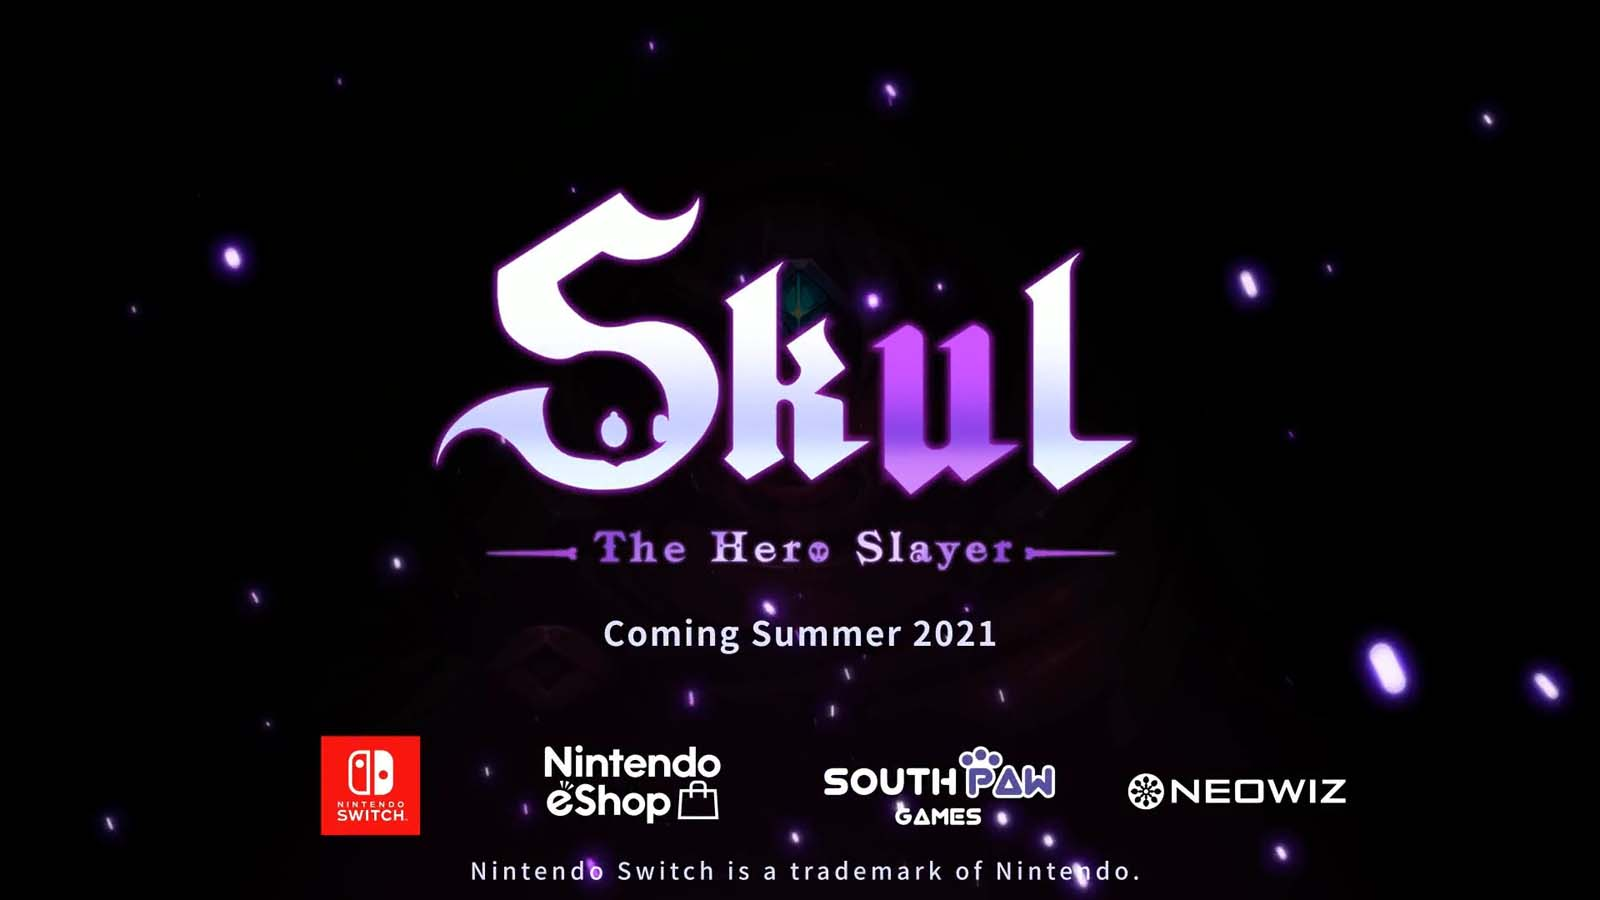 """Skul: The Hero Slayer, the indie sensation published by NEOWIZ and developed by SouthPAW Games, offered a sneak peek at their upcoming Switch version during the Nintendo Indie Showcase. The Nintendo Switch version along with Xbox One and Playstation 4 ports are all set to be released this summer. Having already built a sizable community on Steam and boasting 17K+ reviews with a 93% rating, the expectations for the console ports are high. """"We're extremely excited to bring Skul to consoles and share our game with an even larger community of gamers"""" said Sang Woo Park, CEO of SouthPAW Games. """"We're also going to be updating both the PC and console versions of Skul throughout the year and have a bunch of cool content planned."""" SouthPAW Games also just recently released the 2nd post-launch update for the PC version. It features 4 """"special event maps'' that boost the variability of each run even more and bring a lot of new risk-reward factors into play."""